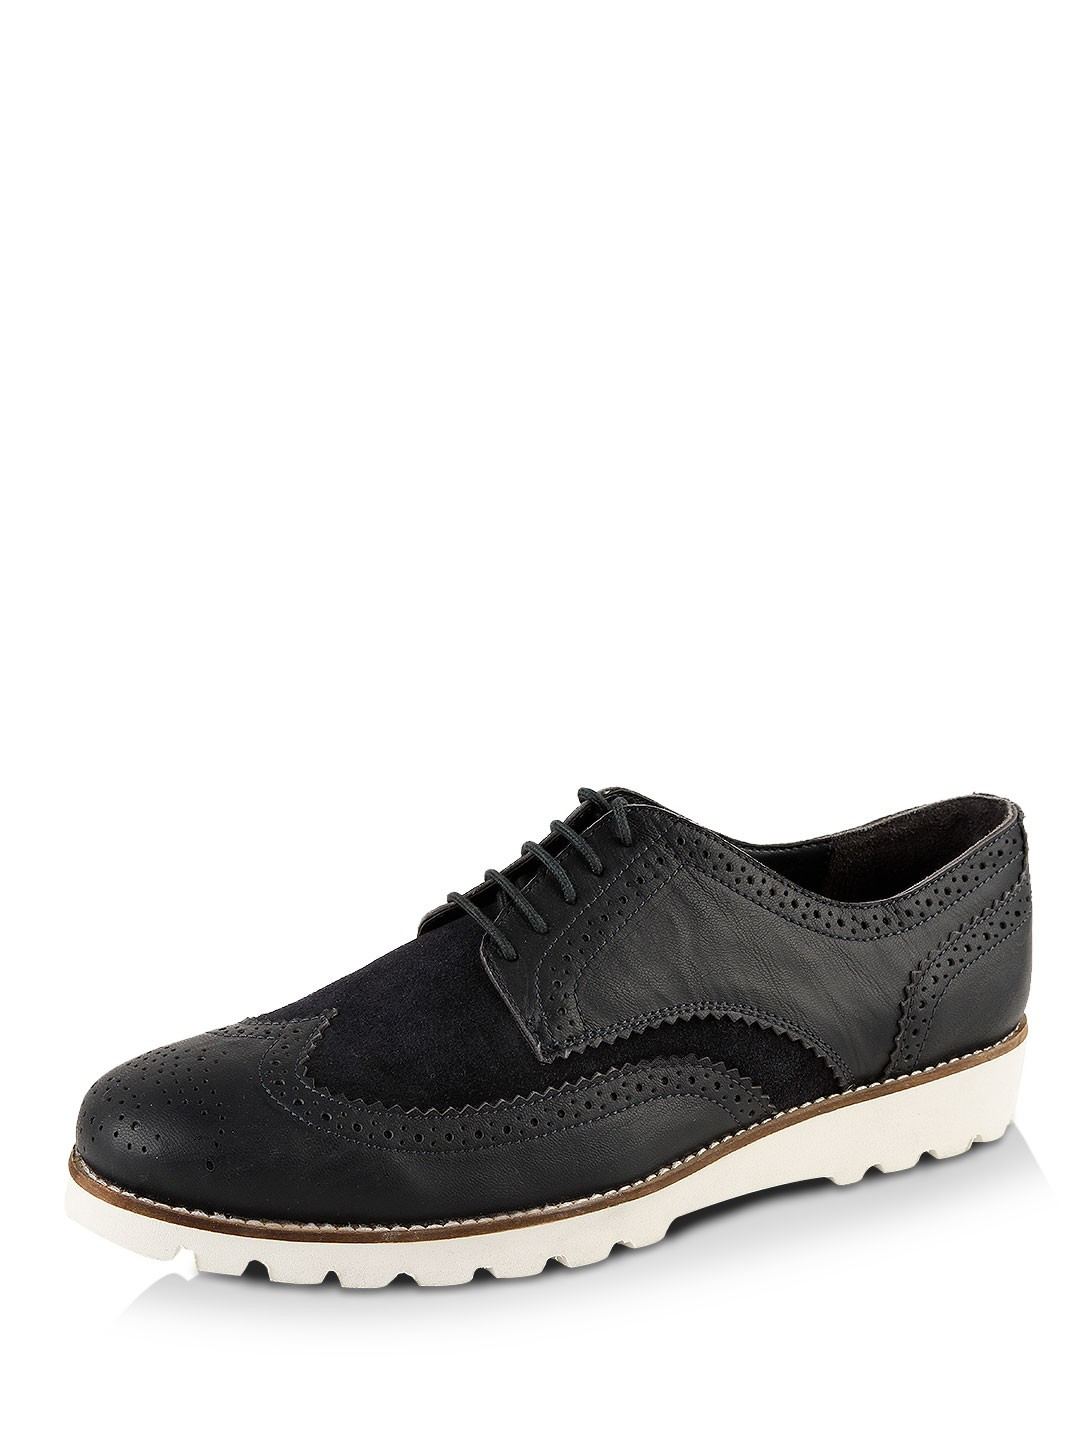 suede leather brogues Rounded, well-fitting lines add to the distinctive design of this suede leather brogue. The shoe features a padded heel counter, an EVA .